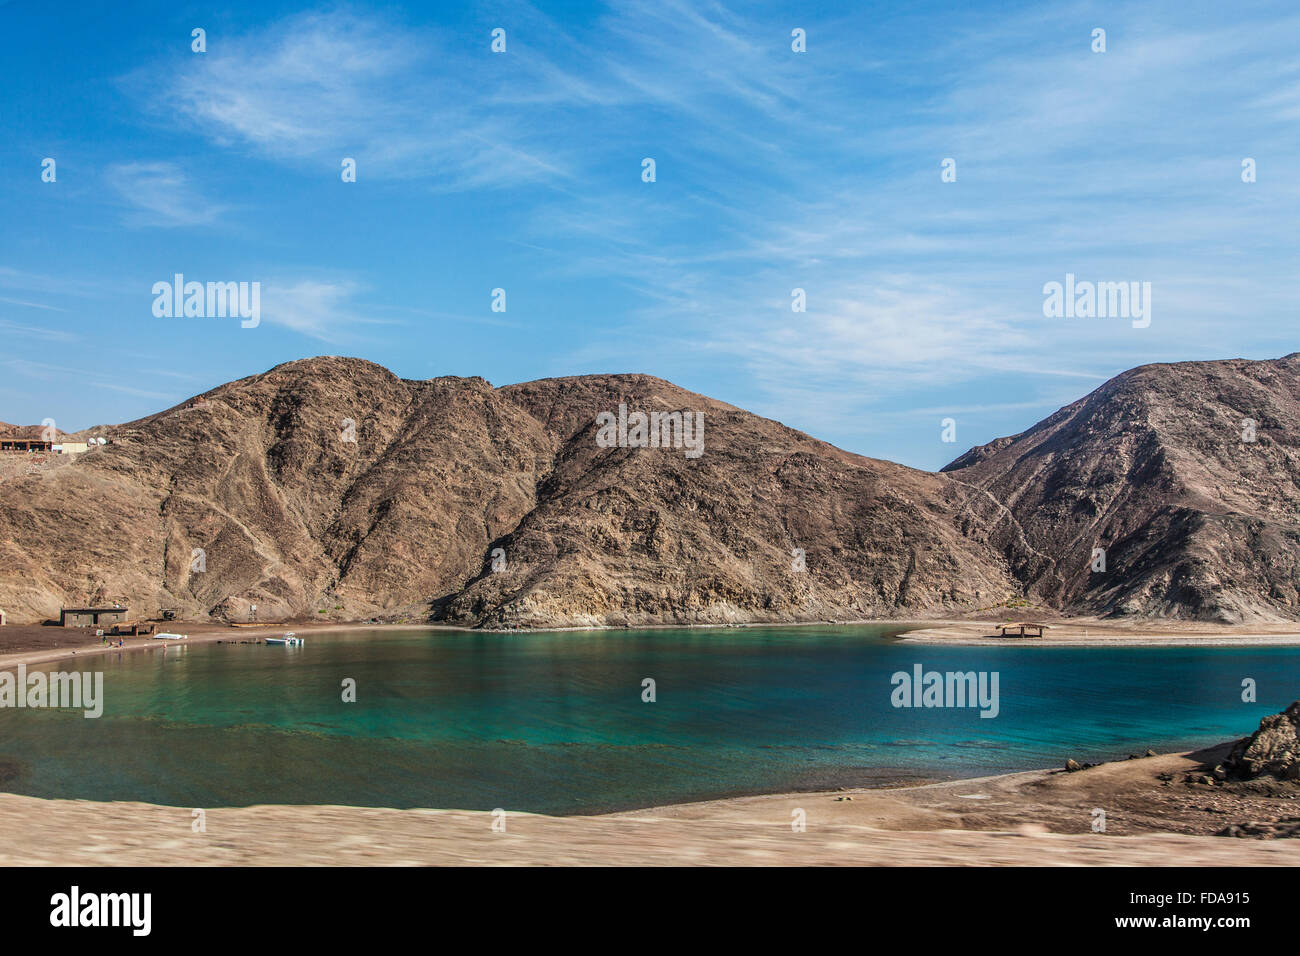 An inlet of the Gulf of Aqaba near Taba on the Sinai Peninsula in Egypt. - Stock Image